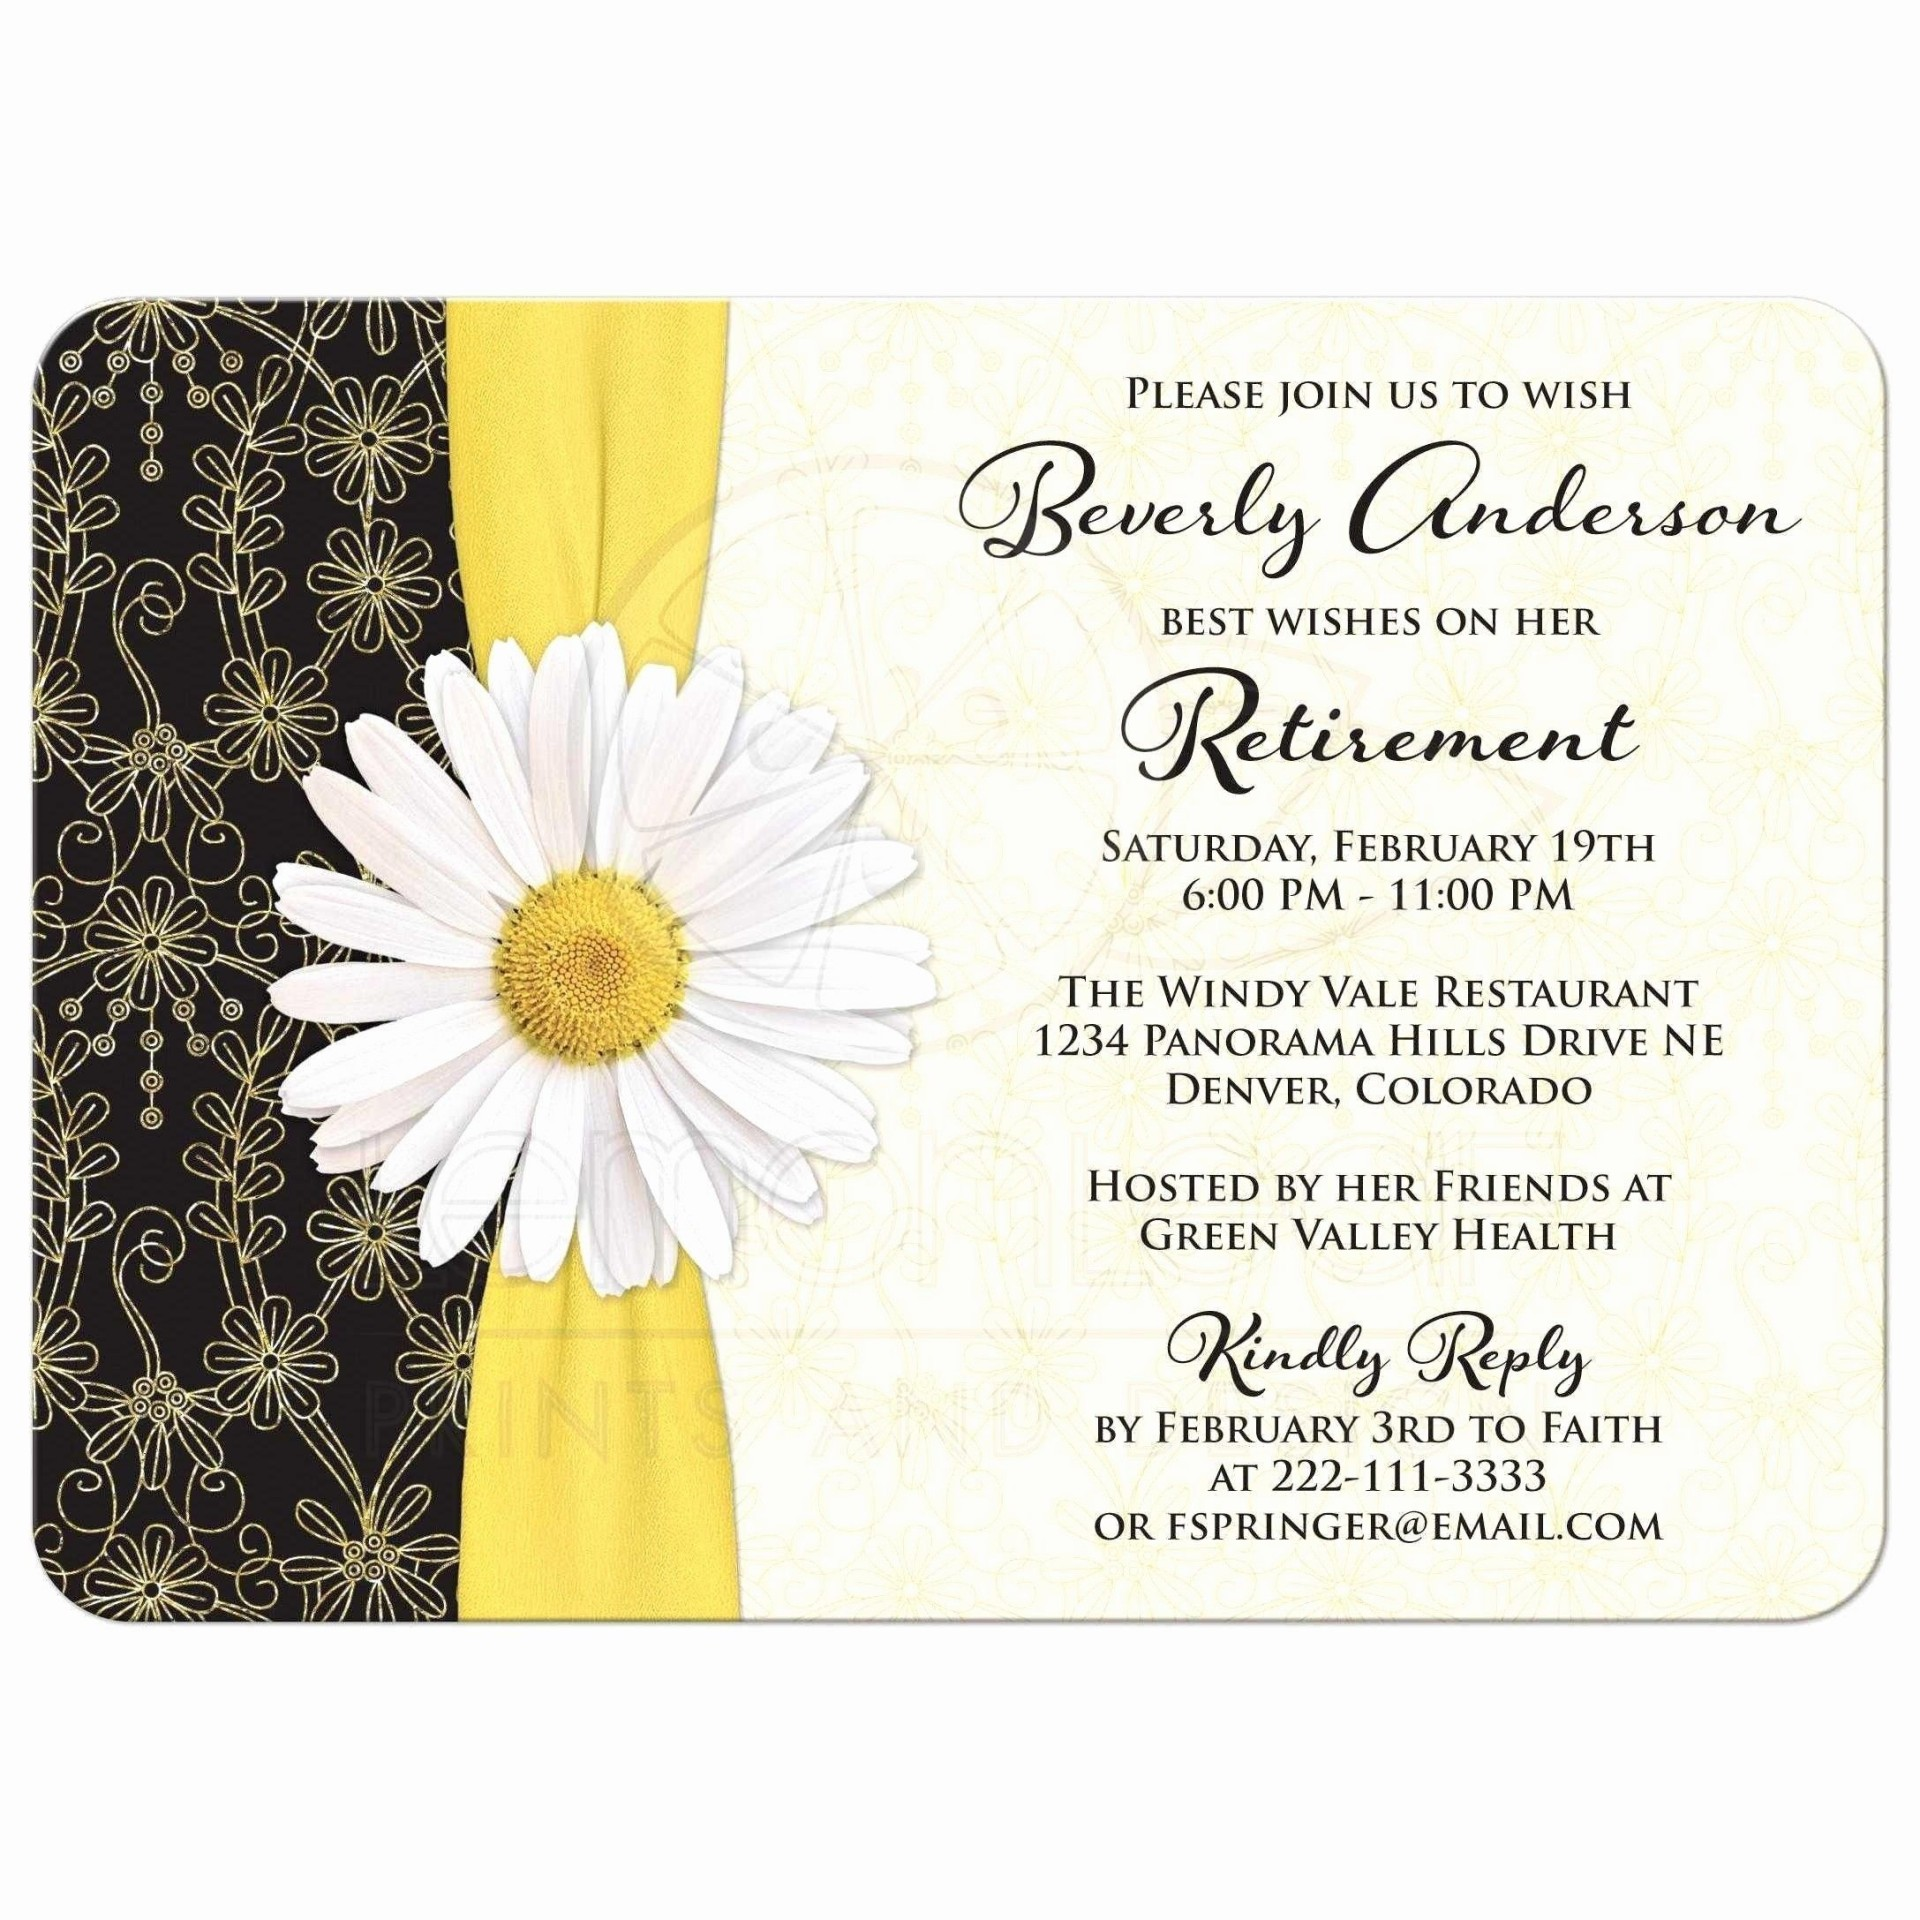 009 Excellent Retirement Party Invite Template Highest Quality  Invitation Online M Word Free1920